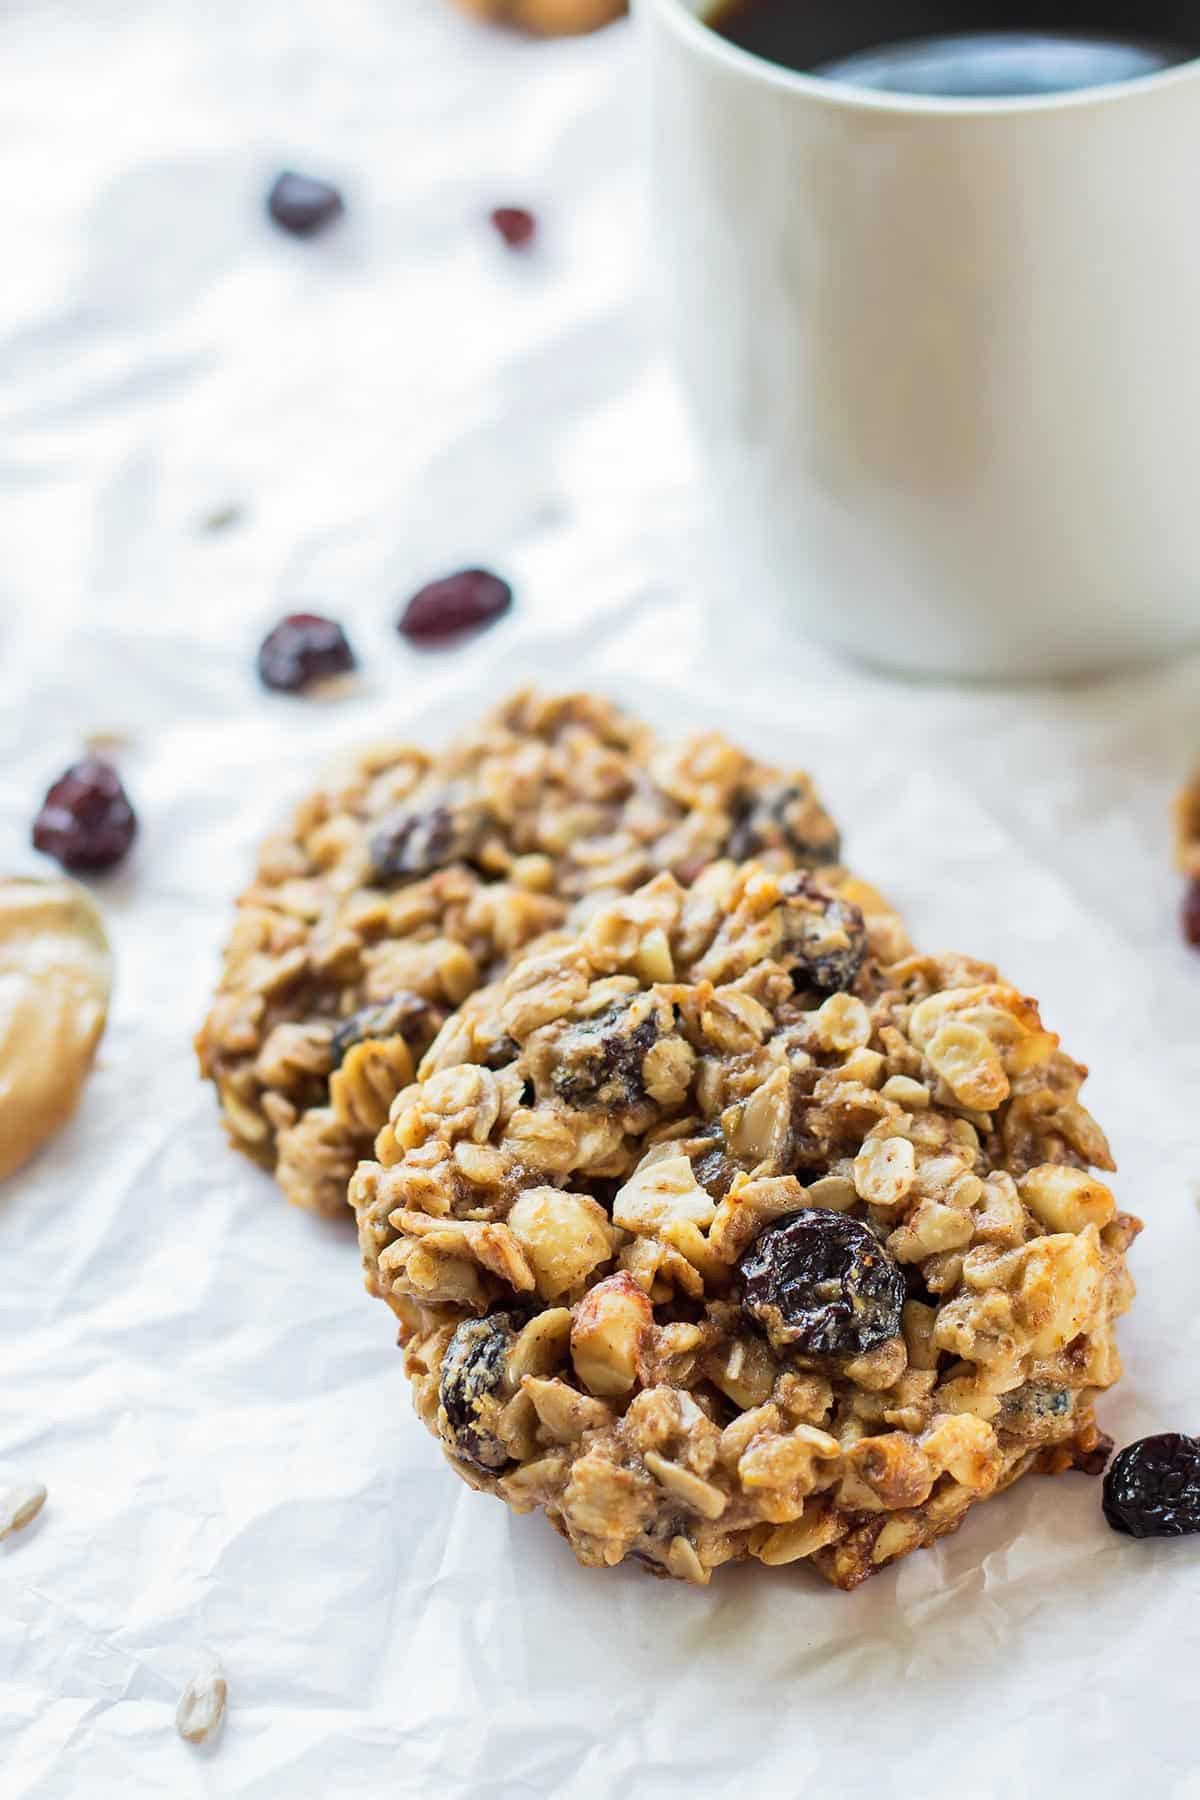 Healthy Peanut Butter Banana Cookies  Peanut Butter Banana Breakfast Cookies Vegan Leelalicious